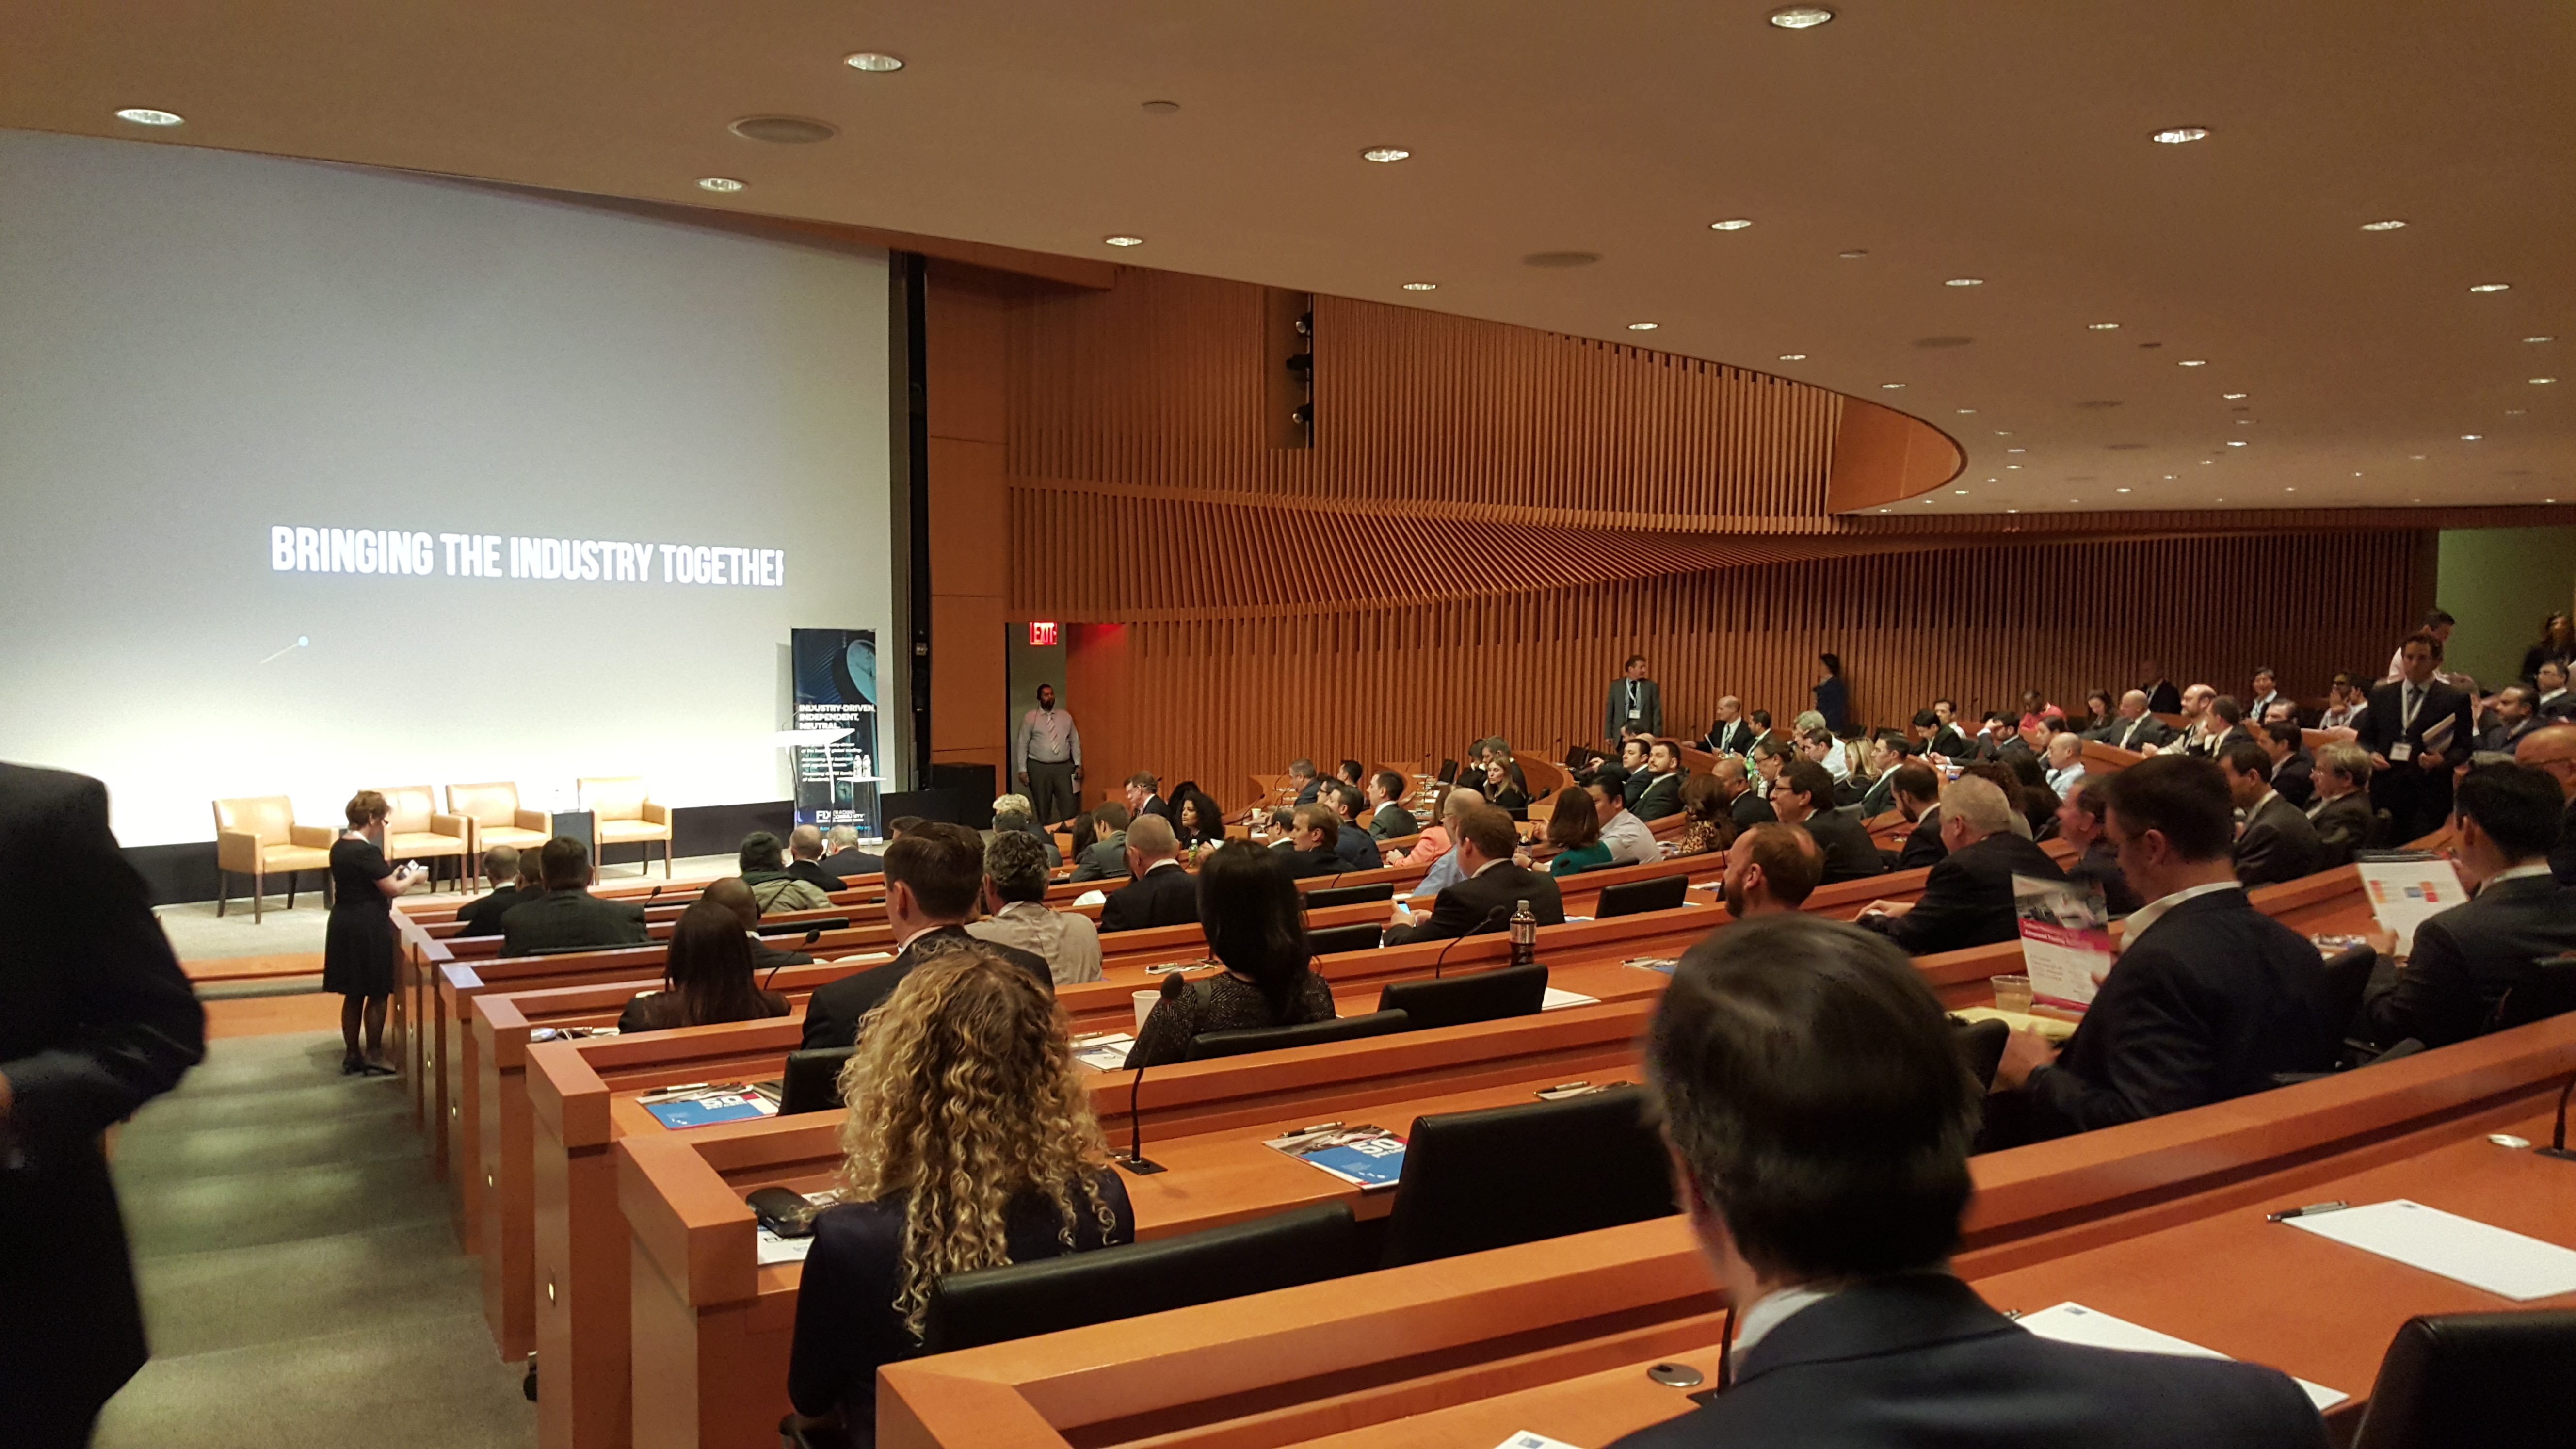 FIX Trading Community Americas Briefing New York Event Follow Up